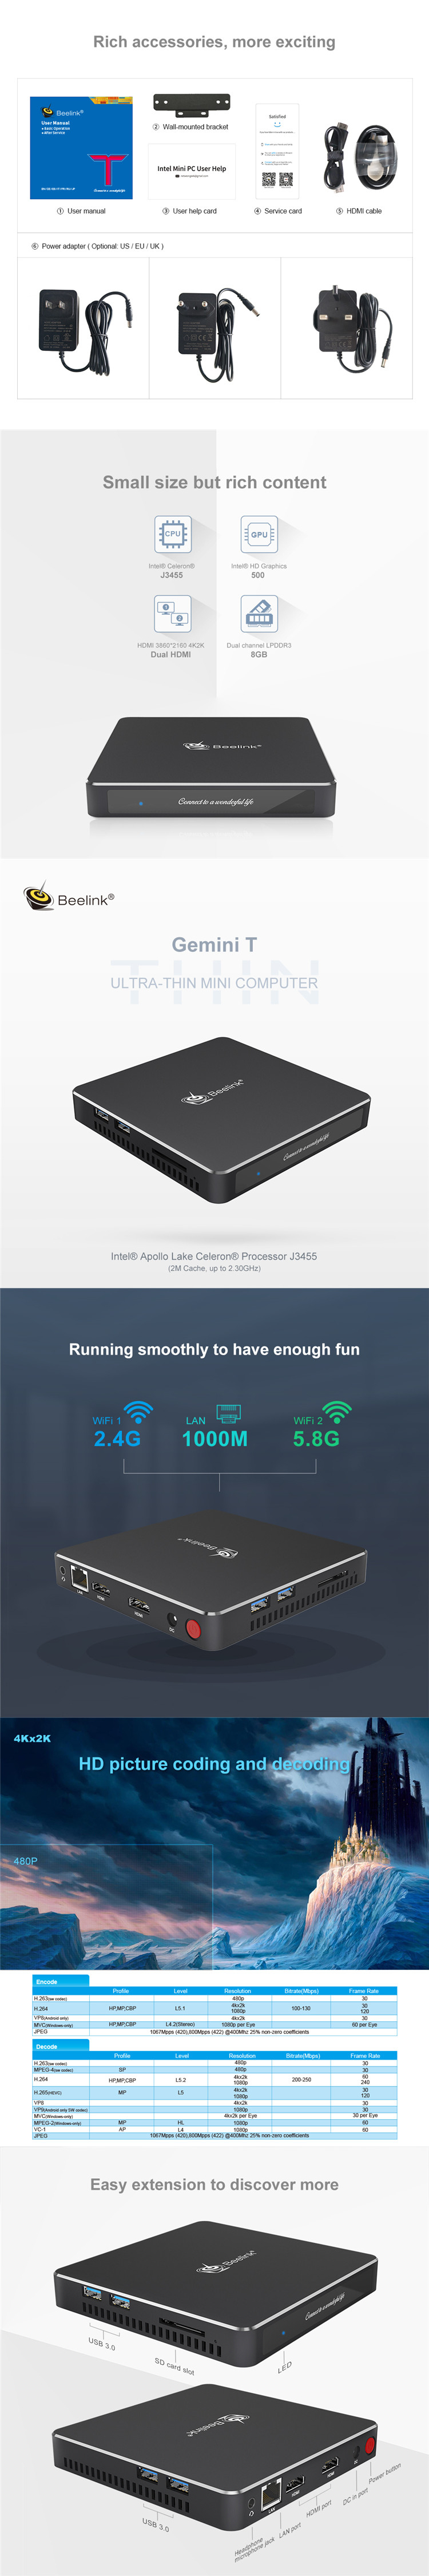 Cheapest Beelink Gemini T34 J3455 Win10 mini pc ram 8gb rom 64gb dual wifi Beelink desktop Gemini T34 J3455